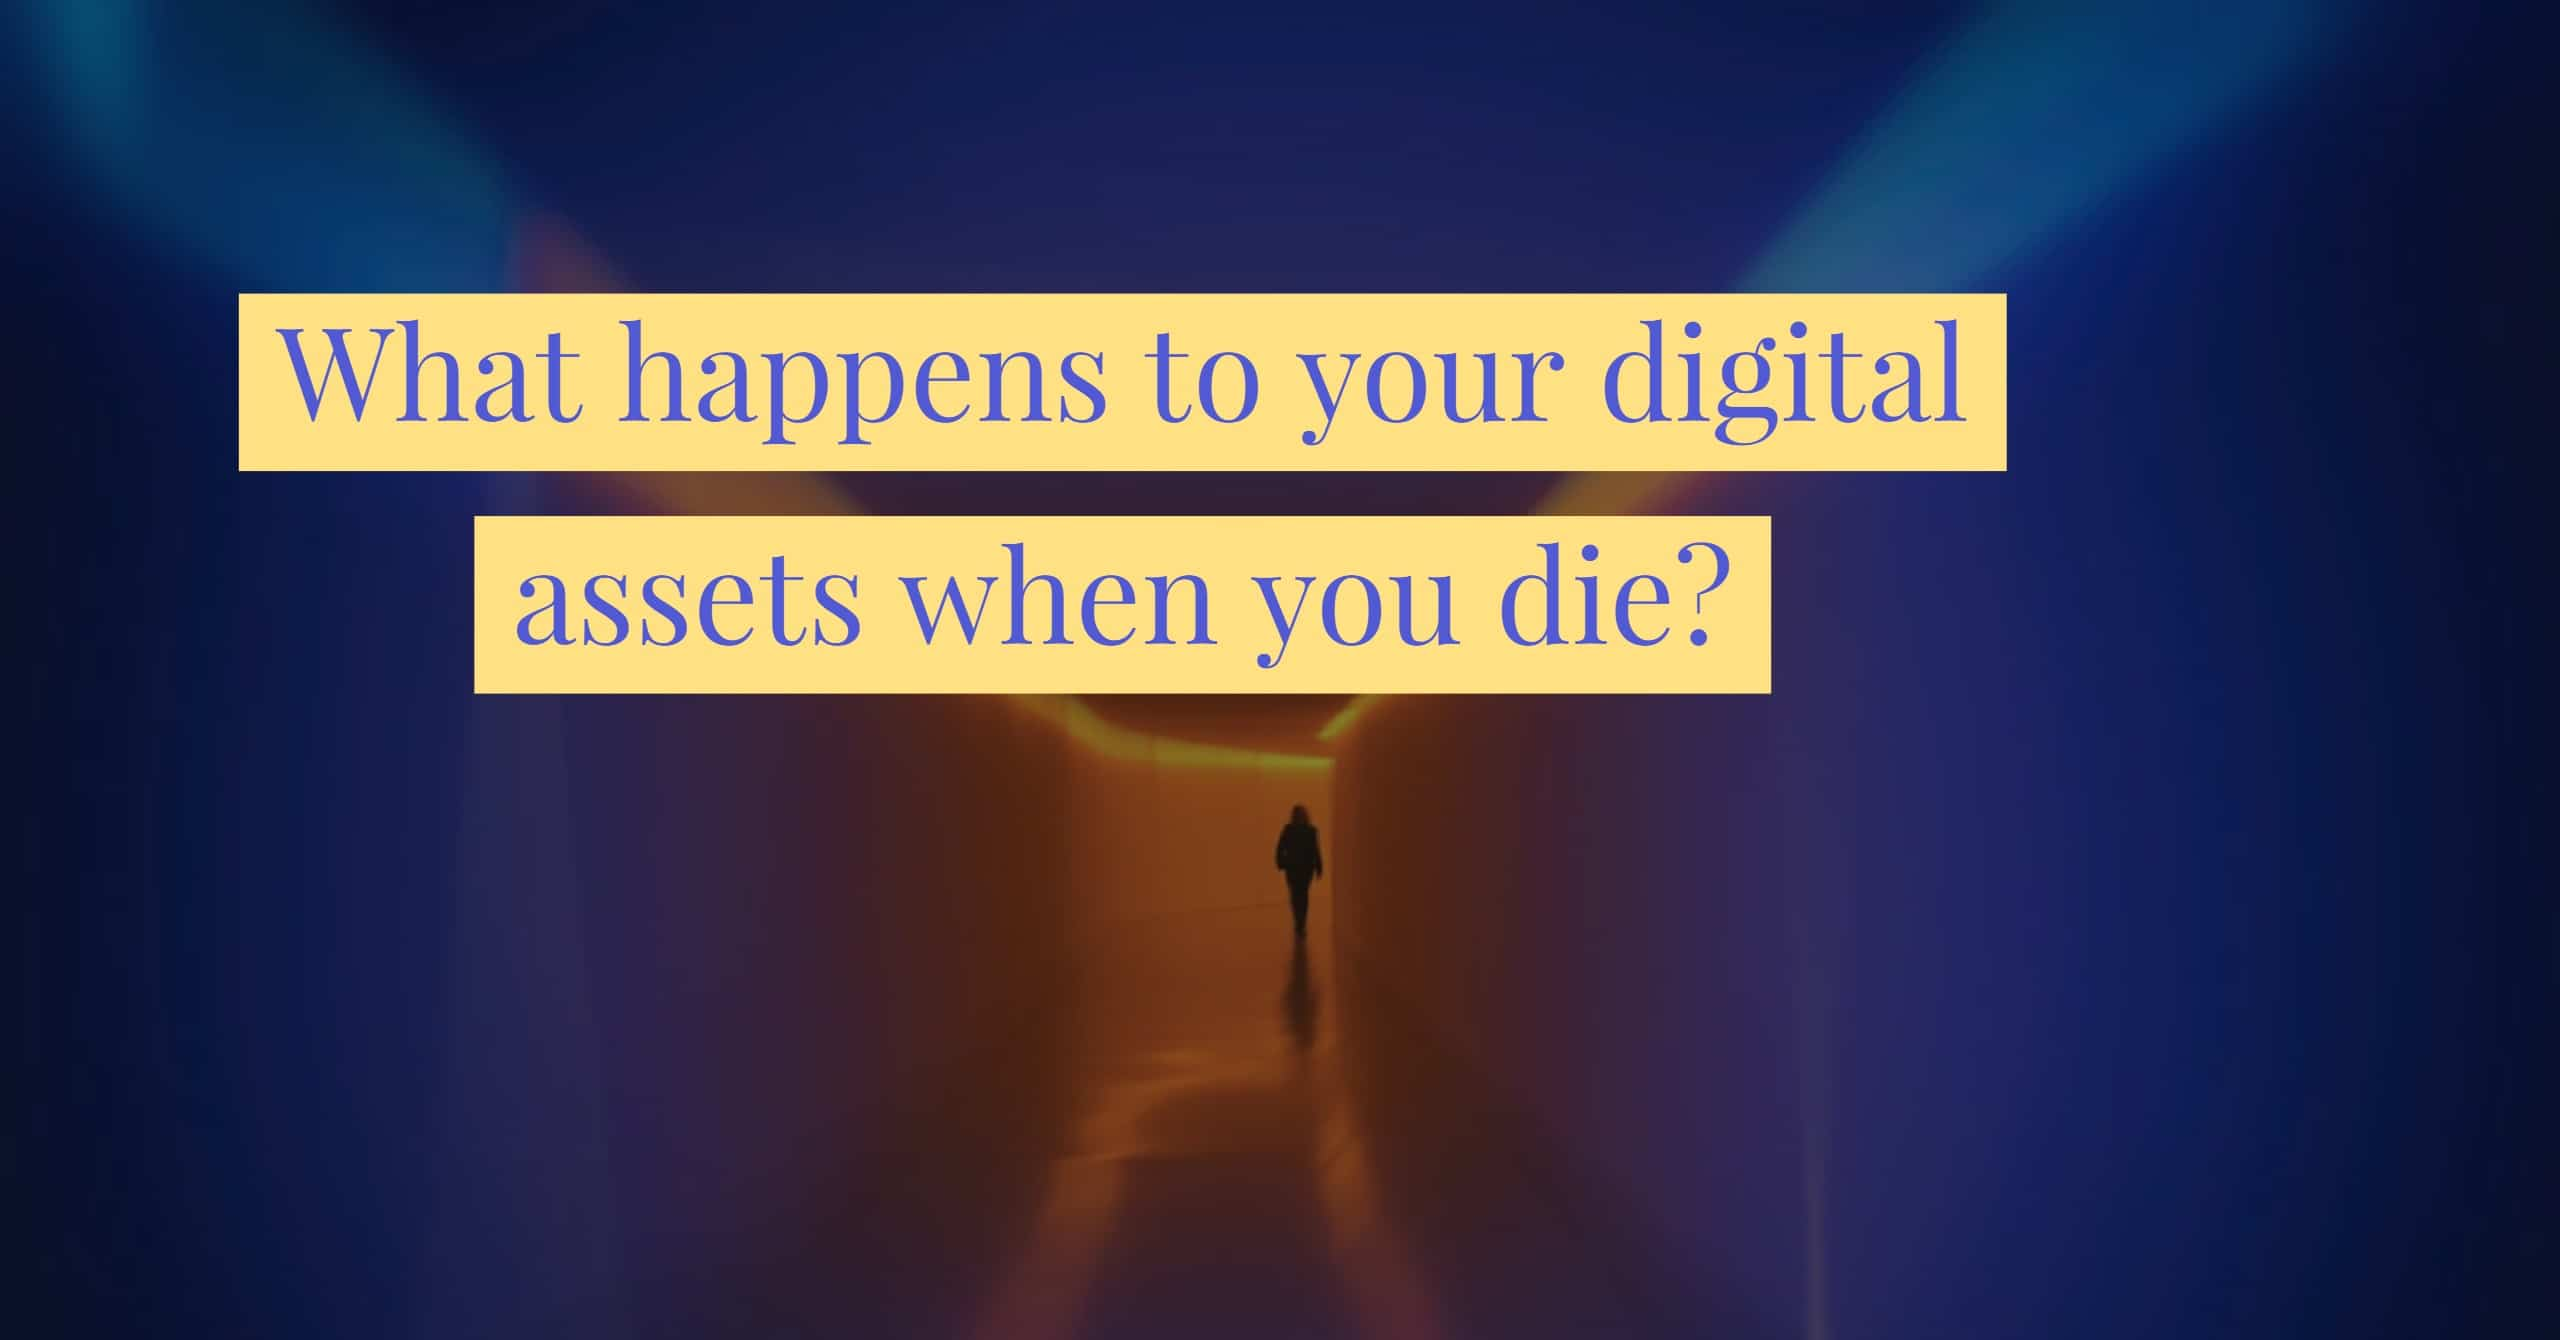 What Happens to my Digital Assets When I Die?